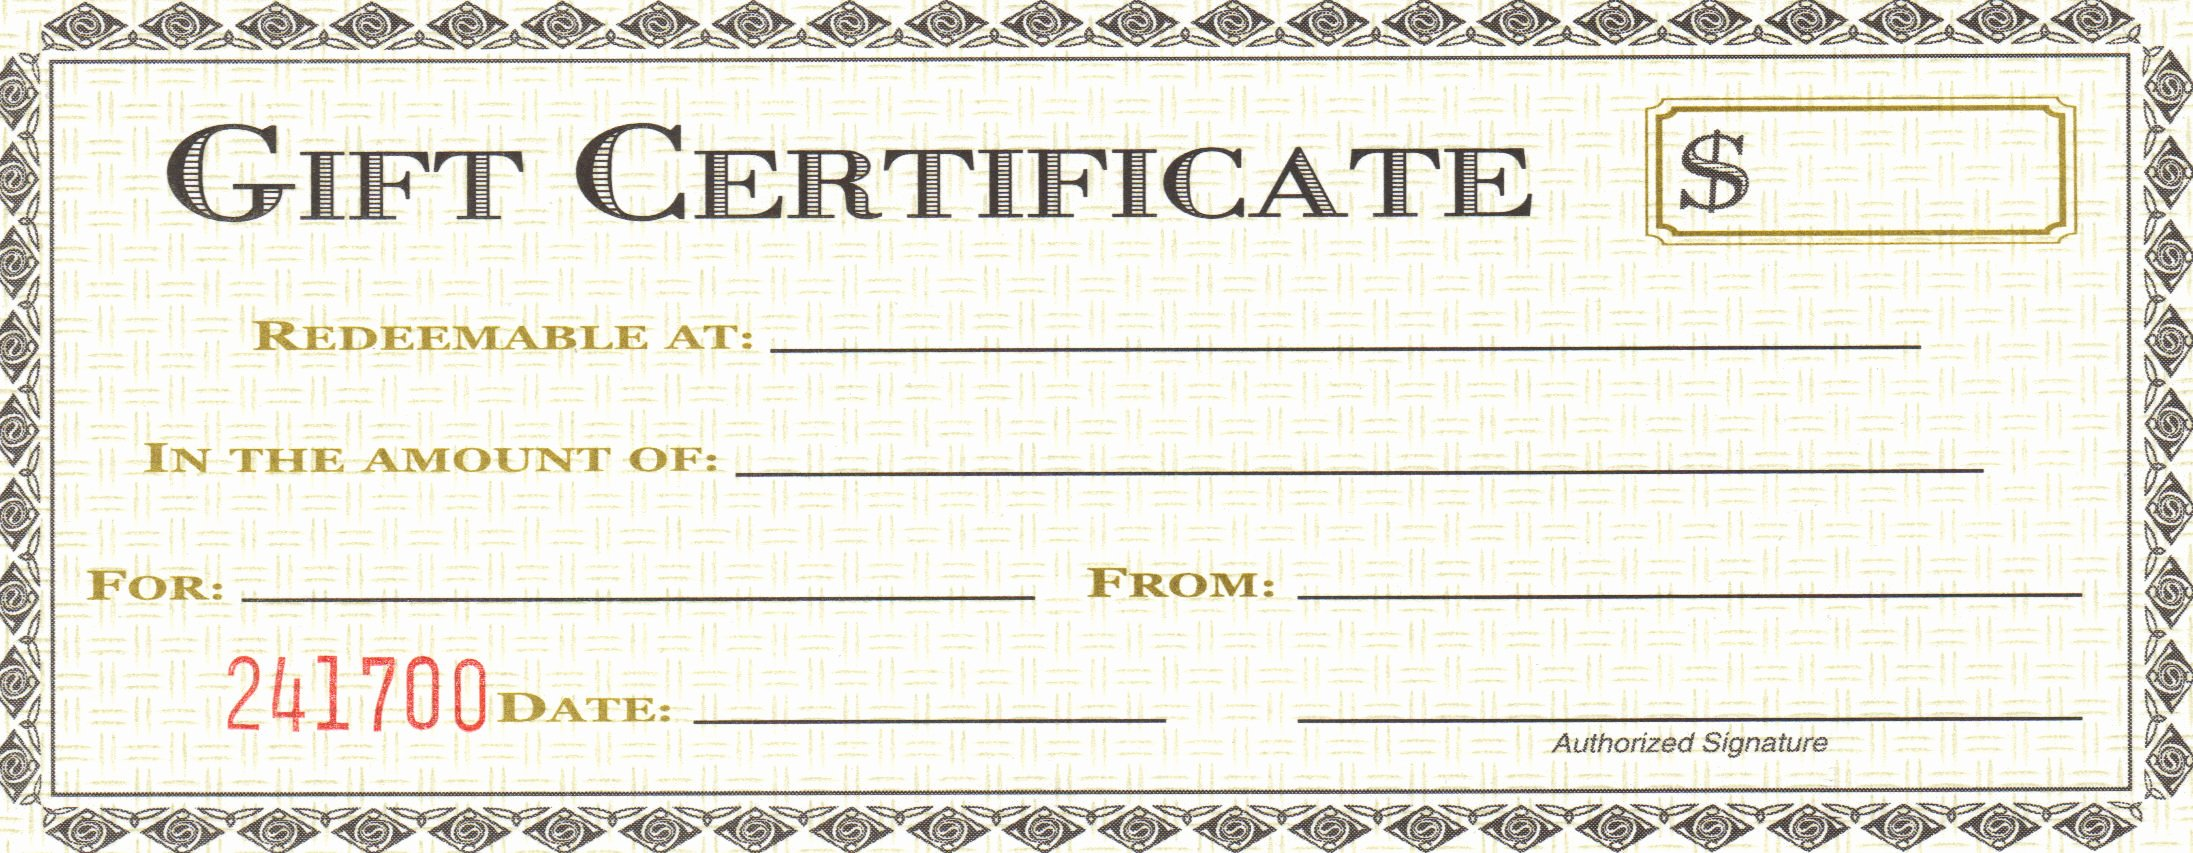 Wording for Gift Certificates New 18 Gift Certificate Templates Excel Pdf formats